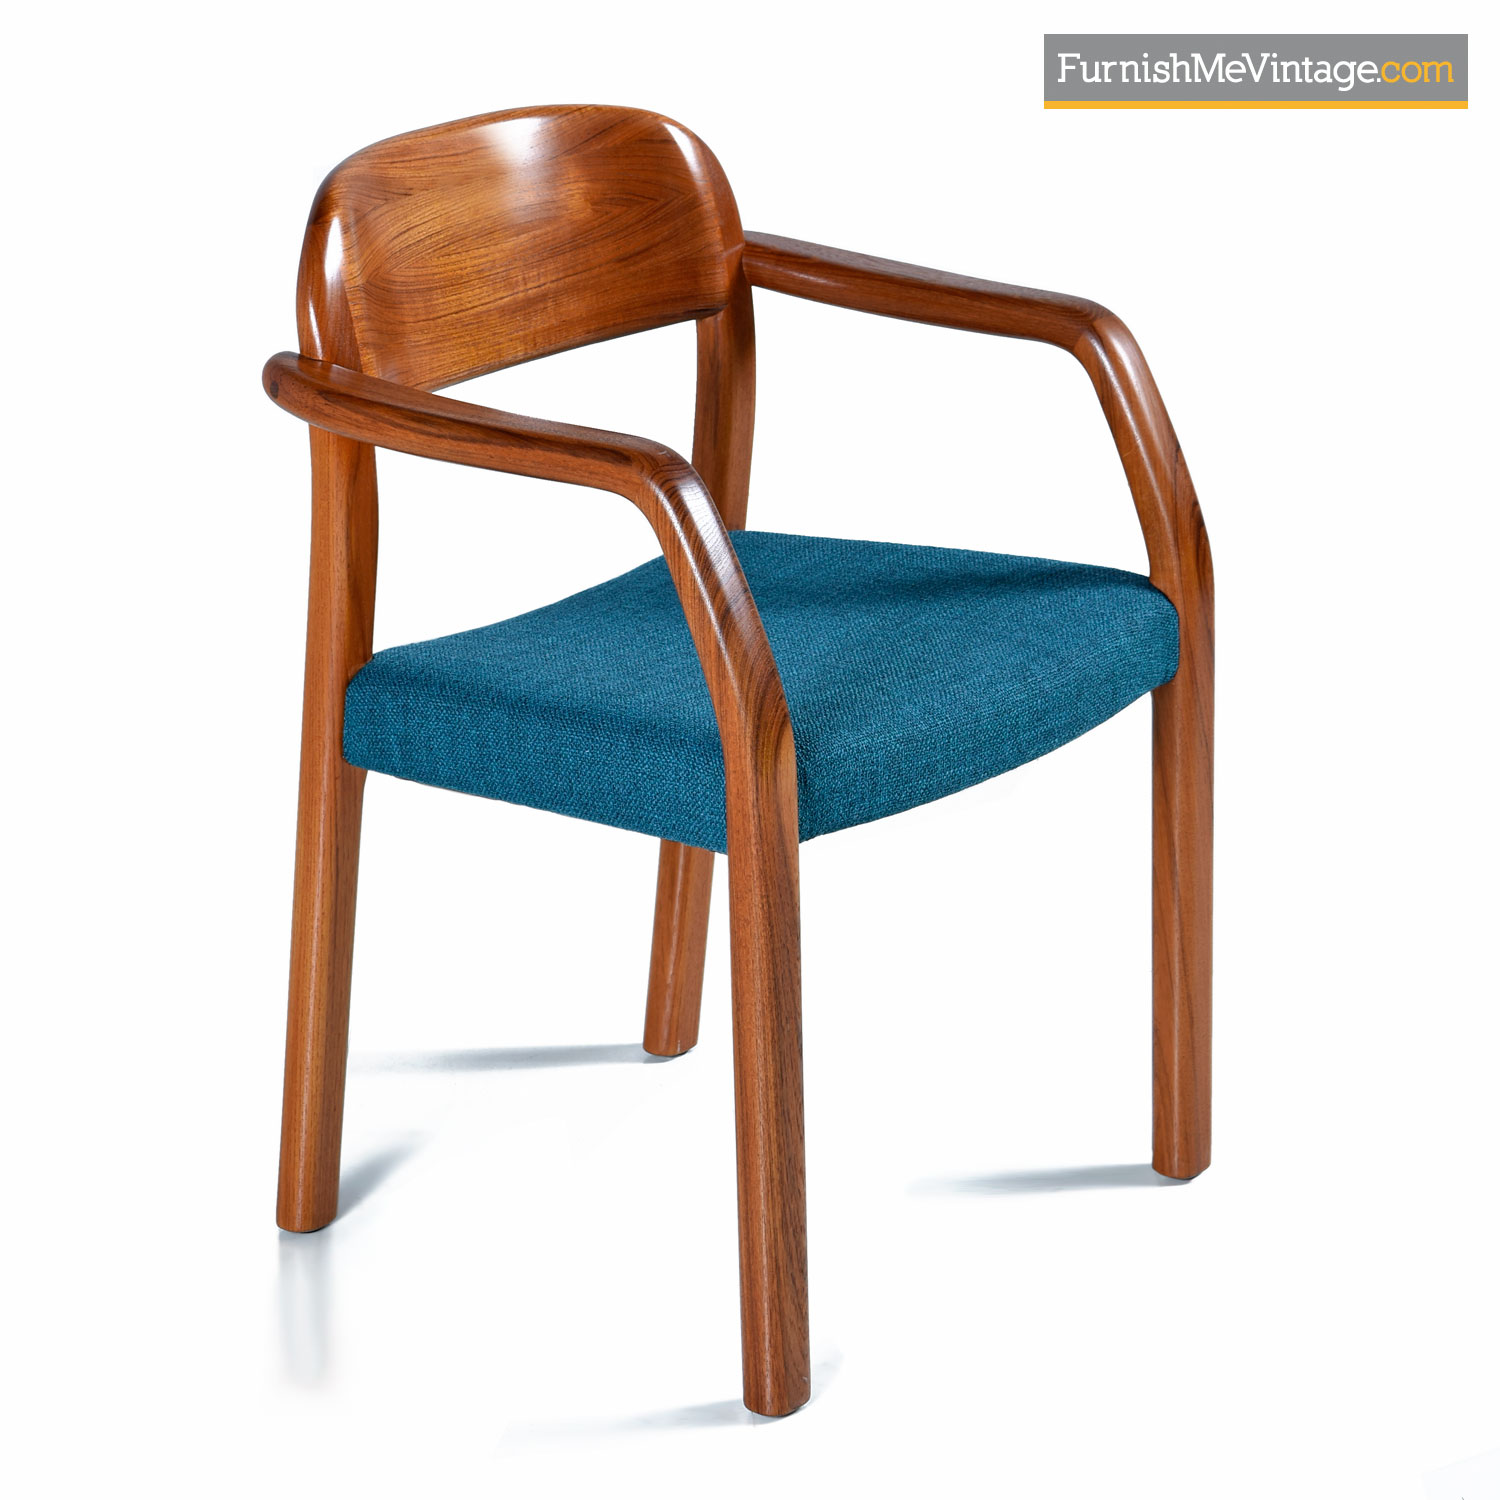 Danish Chair 1970s Solid Teak Danish Modern Armchair With New Blue Upholstery